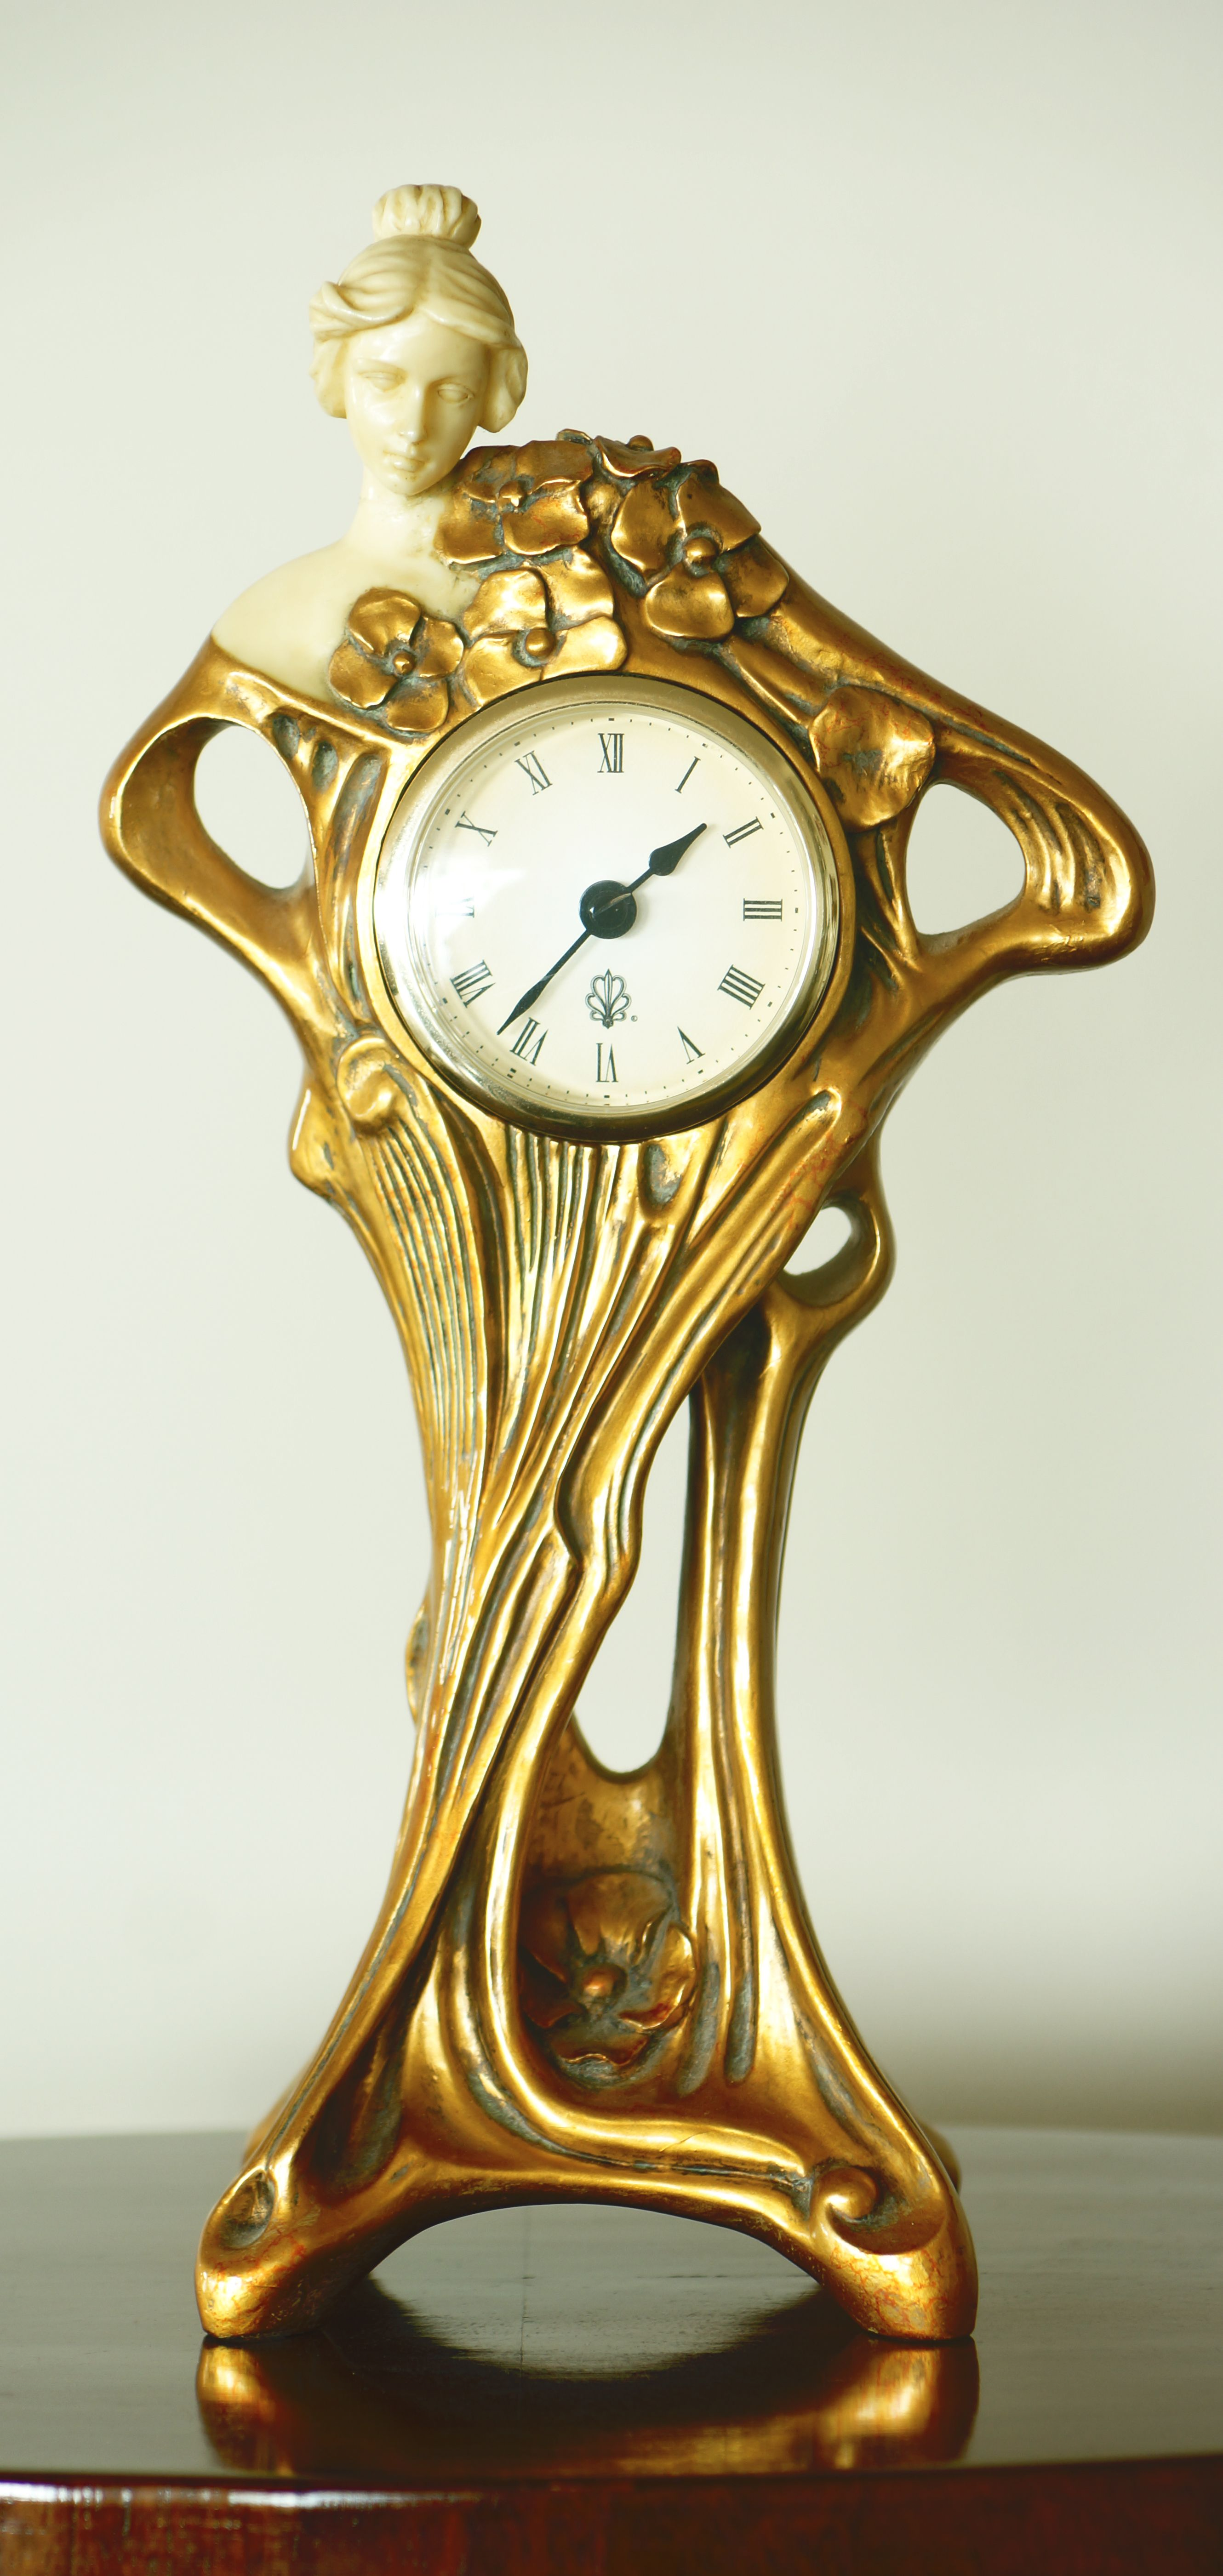 Art Nouveau Clock,E. Bakla collection. | 411 Art Nouveau / My ...